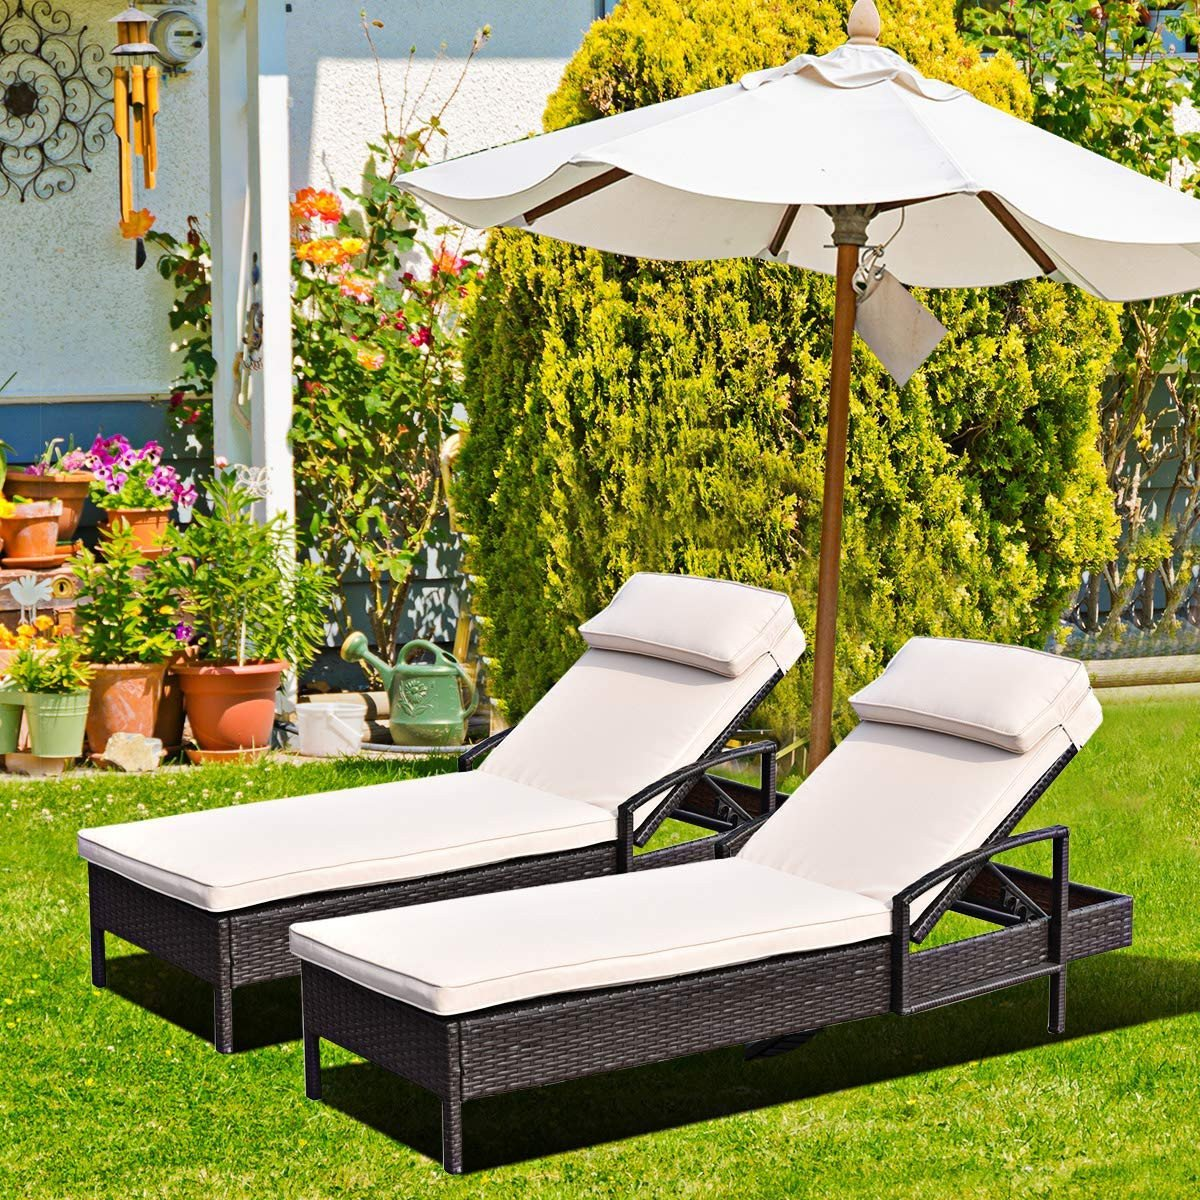 White Wicker Bedroom Furniture Beautiful Patiojoy Patio Reclining Chaise Lounge Outdoor Beach Pool Yard Porch Wicker Rattan Chaise Adjustable Backrest Lounger Chair Beige